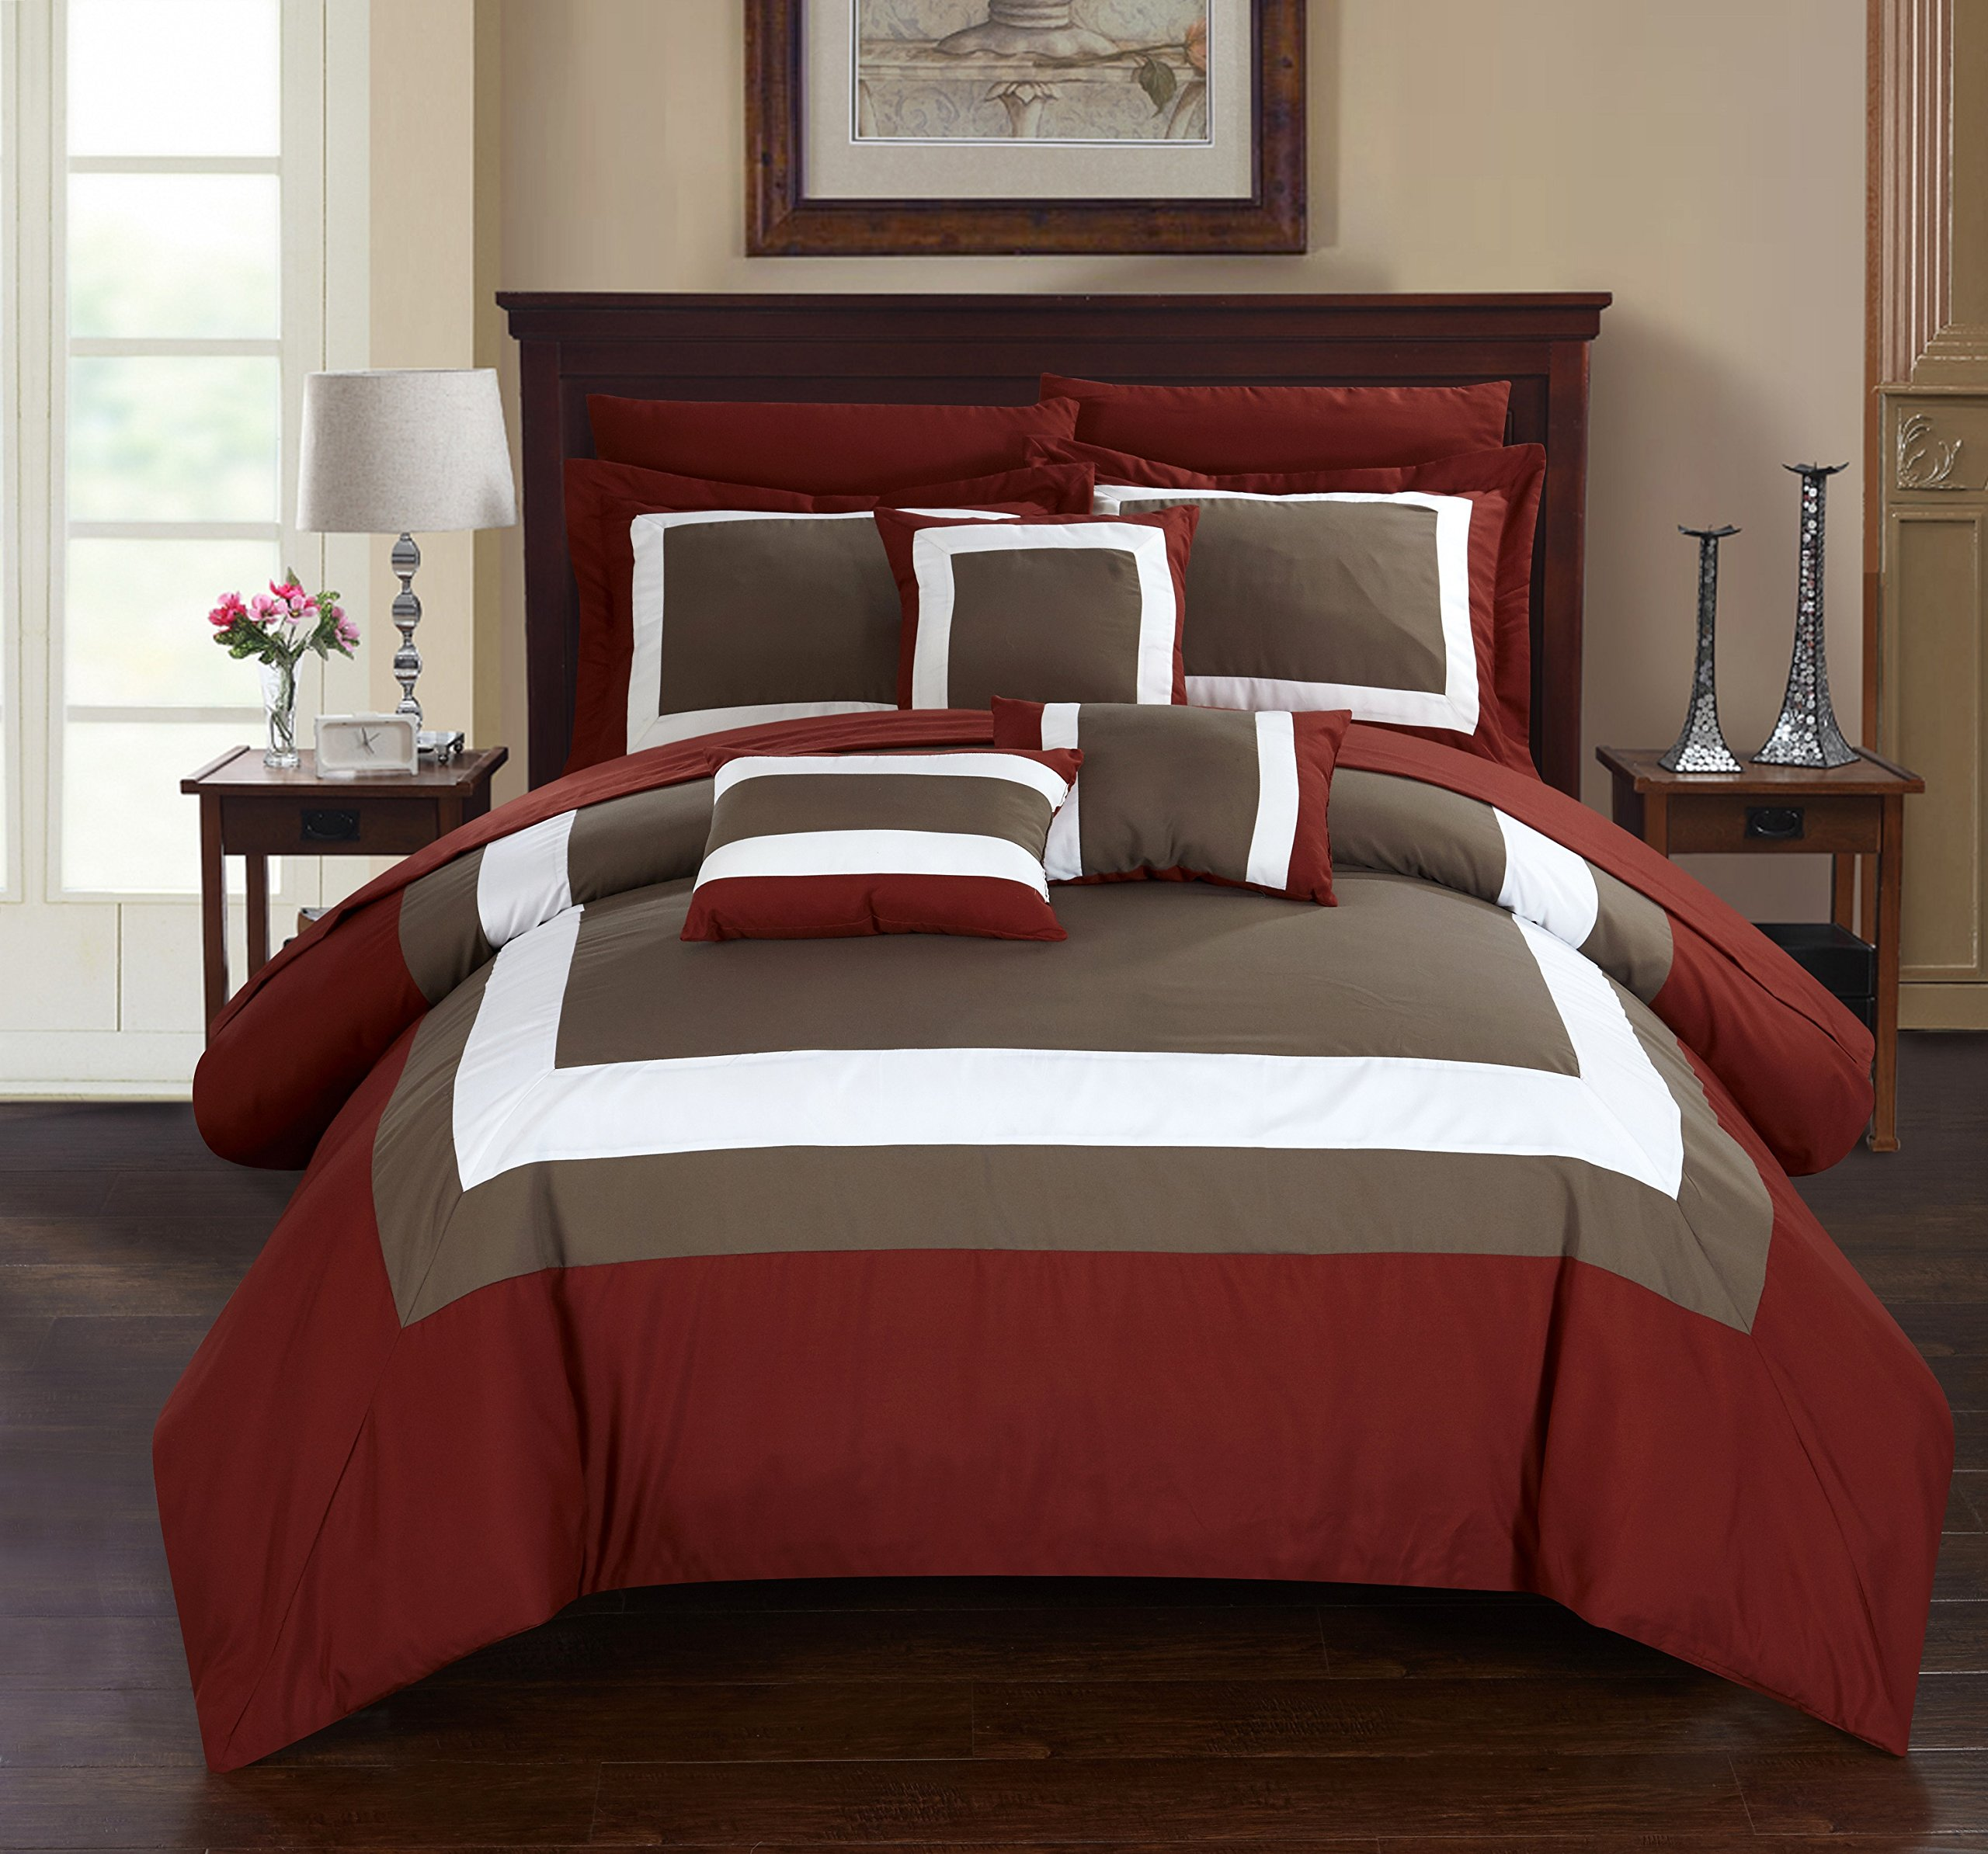 Chic Home Duke 10 Piece Comforter Set Complete Bed in a Bag Pieced Color Block Patterned Bedding with Sheet Set And Decorative Pillows Shams Included, King Brick Red by Chic Home